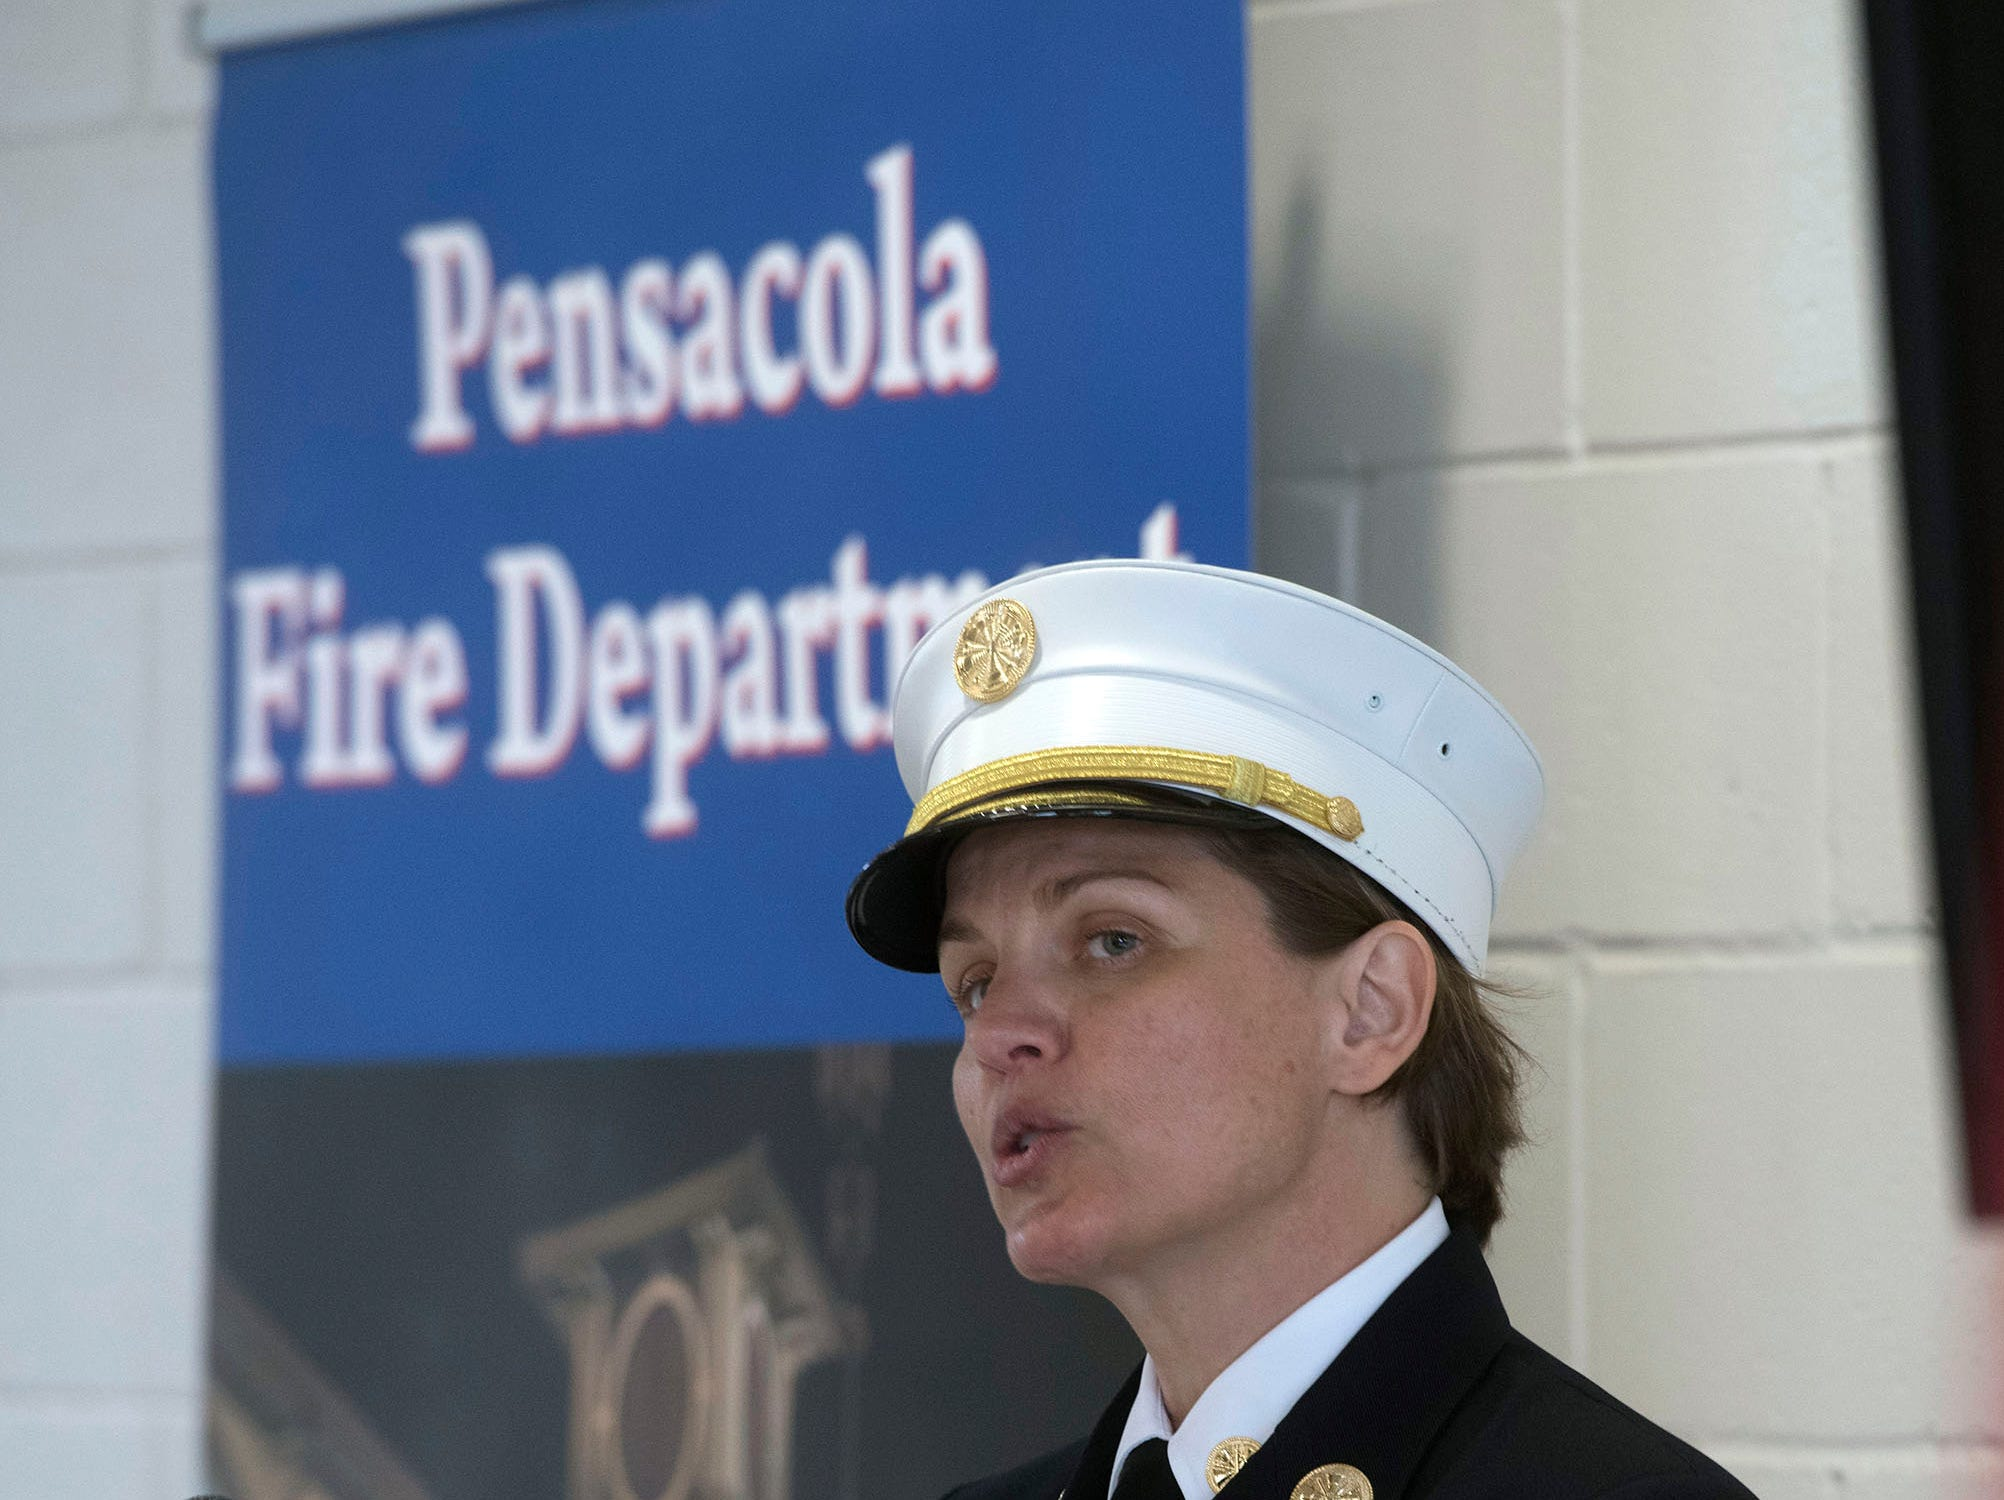 Pensacola Fire Chief Ginny Cranor speaks during a ceremony to dedicate the new Fire Sation Three off Summit Blvd on Thursday, March 14, 2019. The new building replaces the current station built in 1969 — money from the local option sales tax paid for the project.